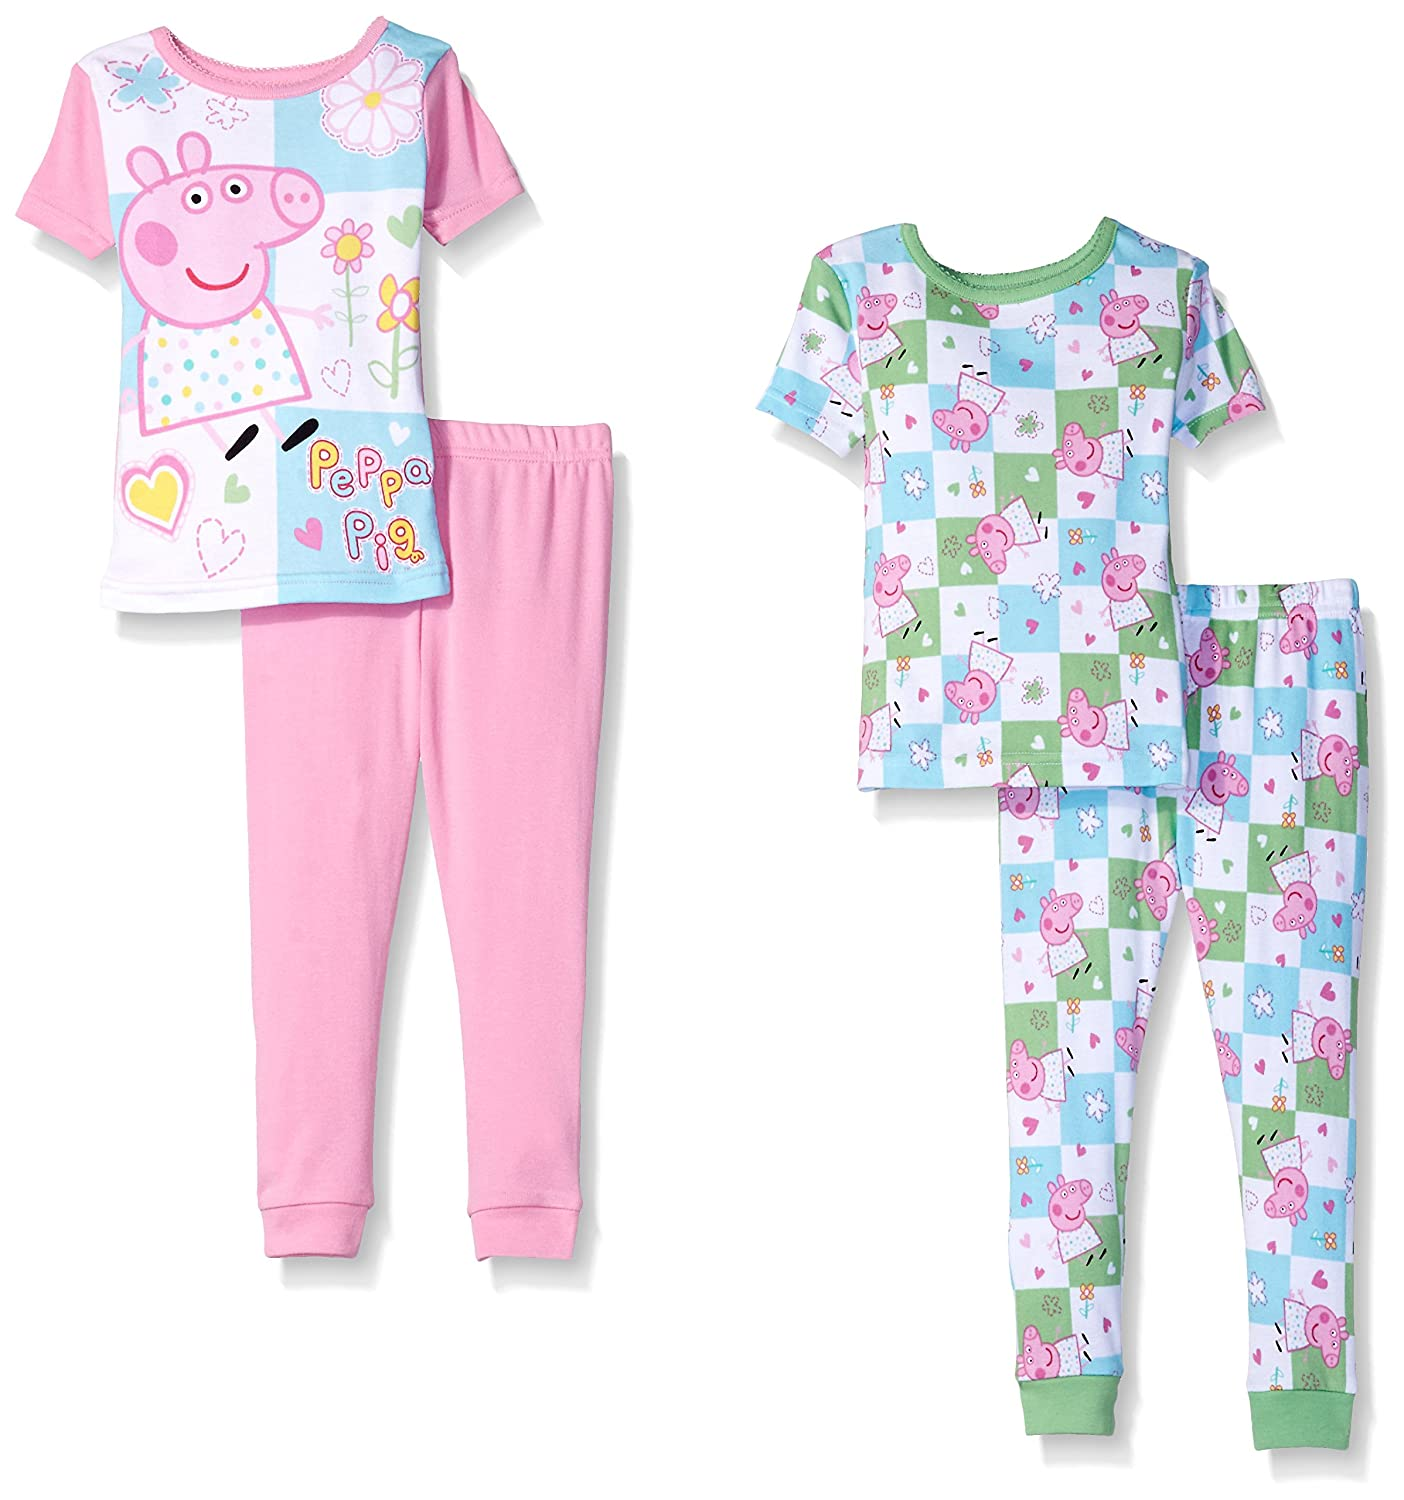 Peppa Pig Girls Toddler Girls 4 Piece Cotton Set K182277PP